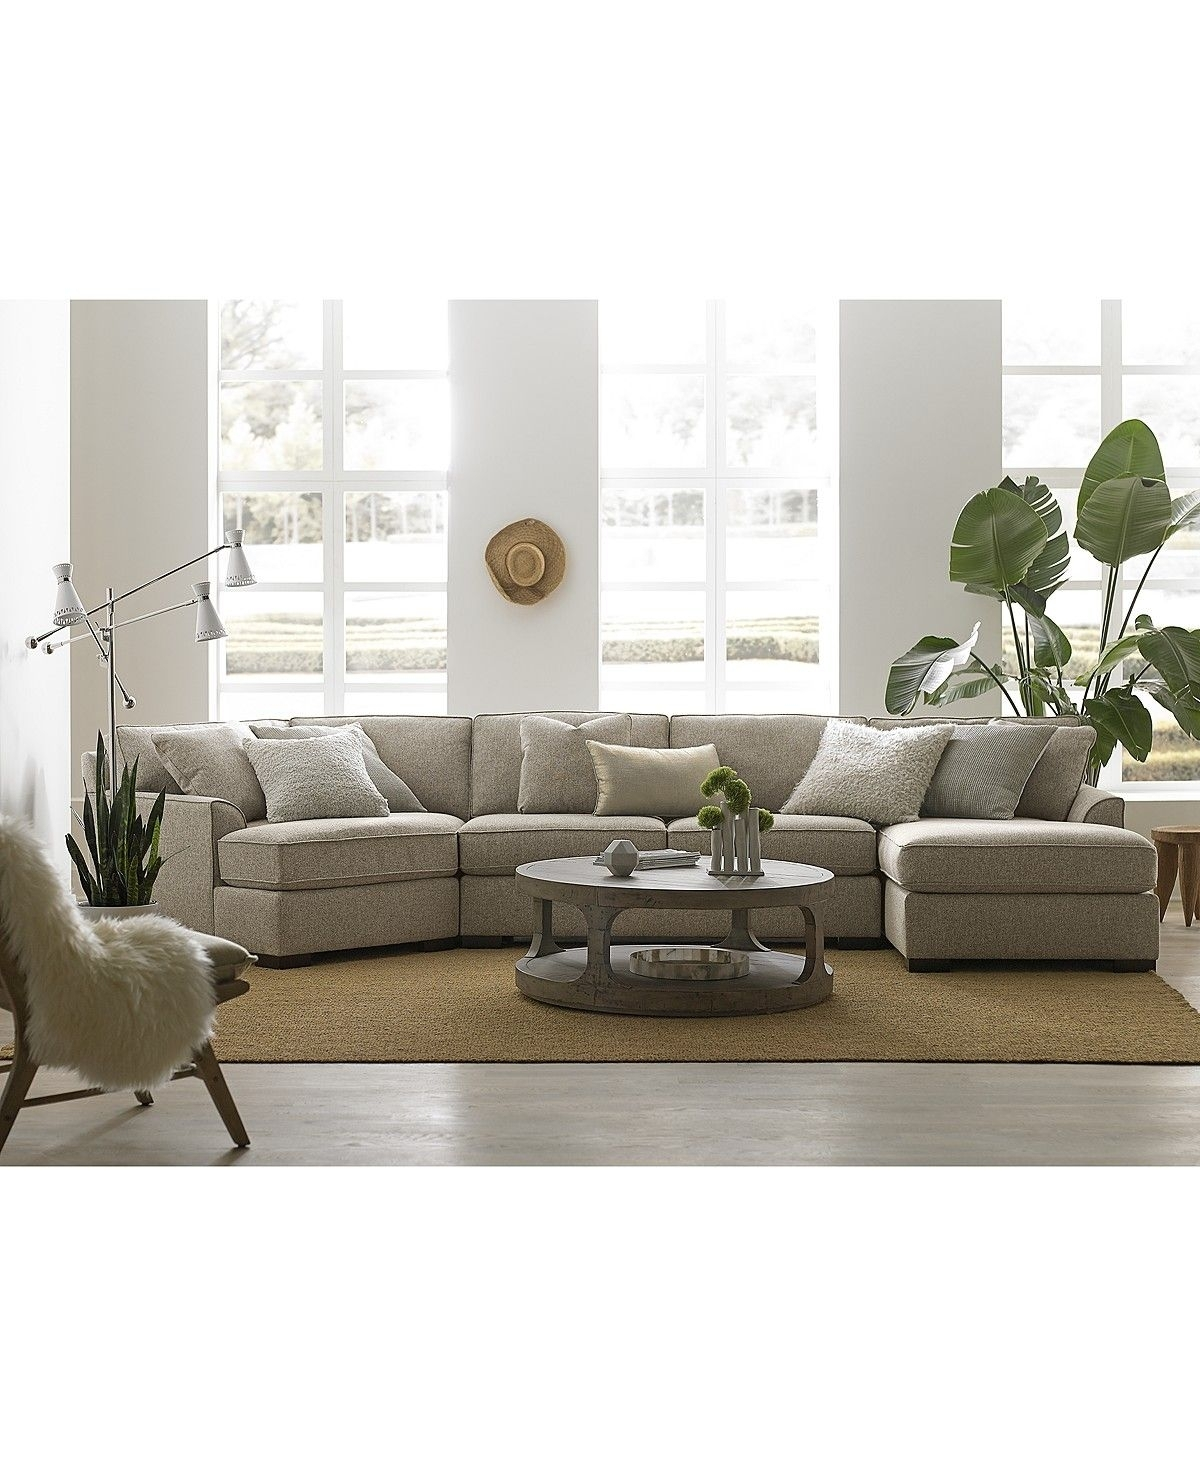 Carena 3-Pc. Fabric Sectional With Cuddler Chaise, Created For inside Burton Leather 3 Piece Sectionals (Image 4 of 30)